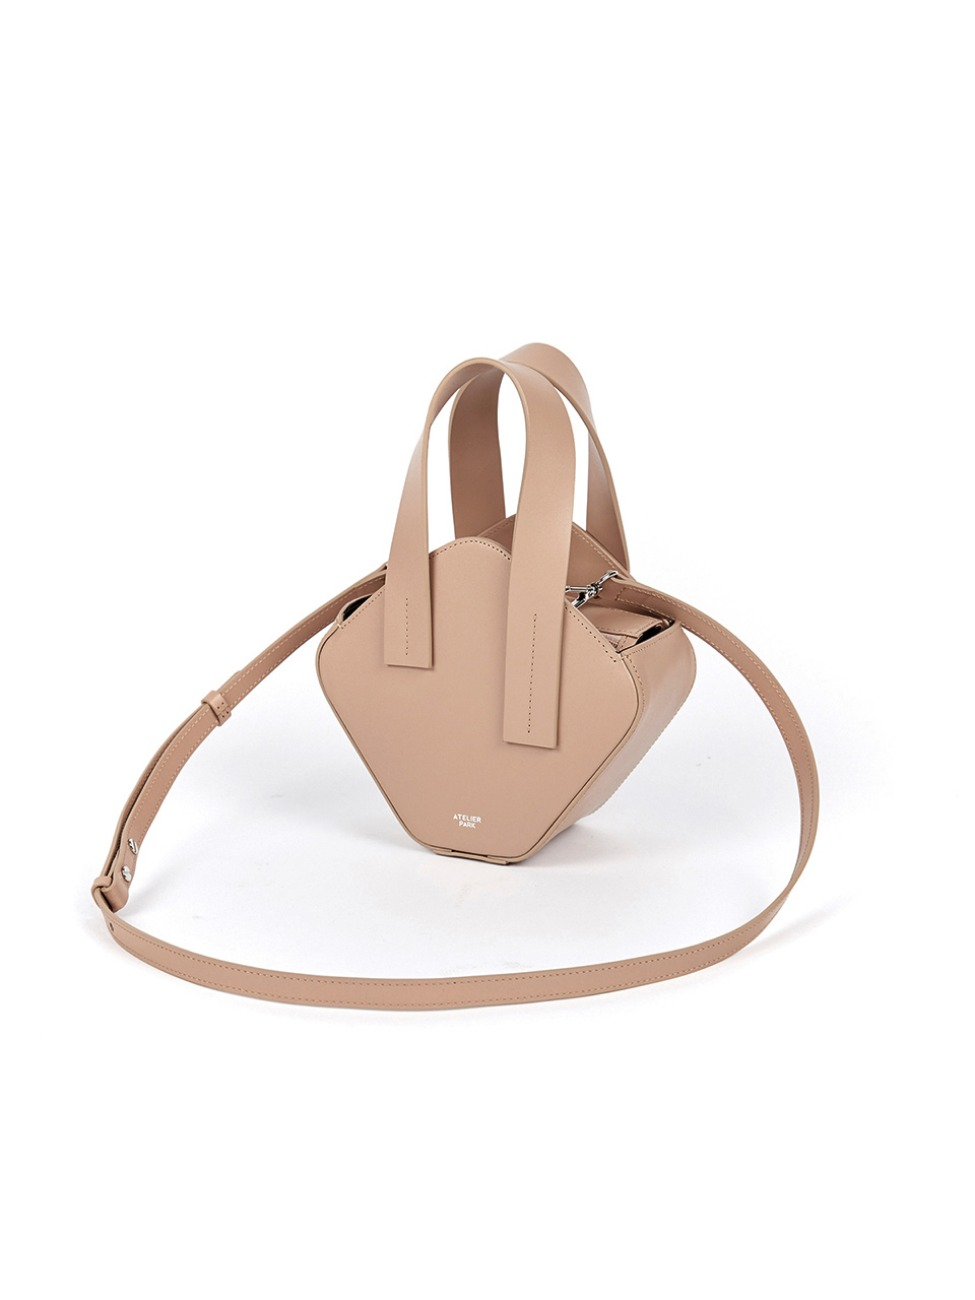 MONIC BAG_MINI_Beige